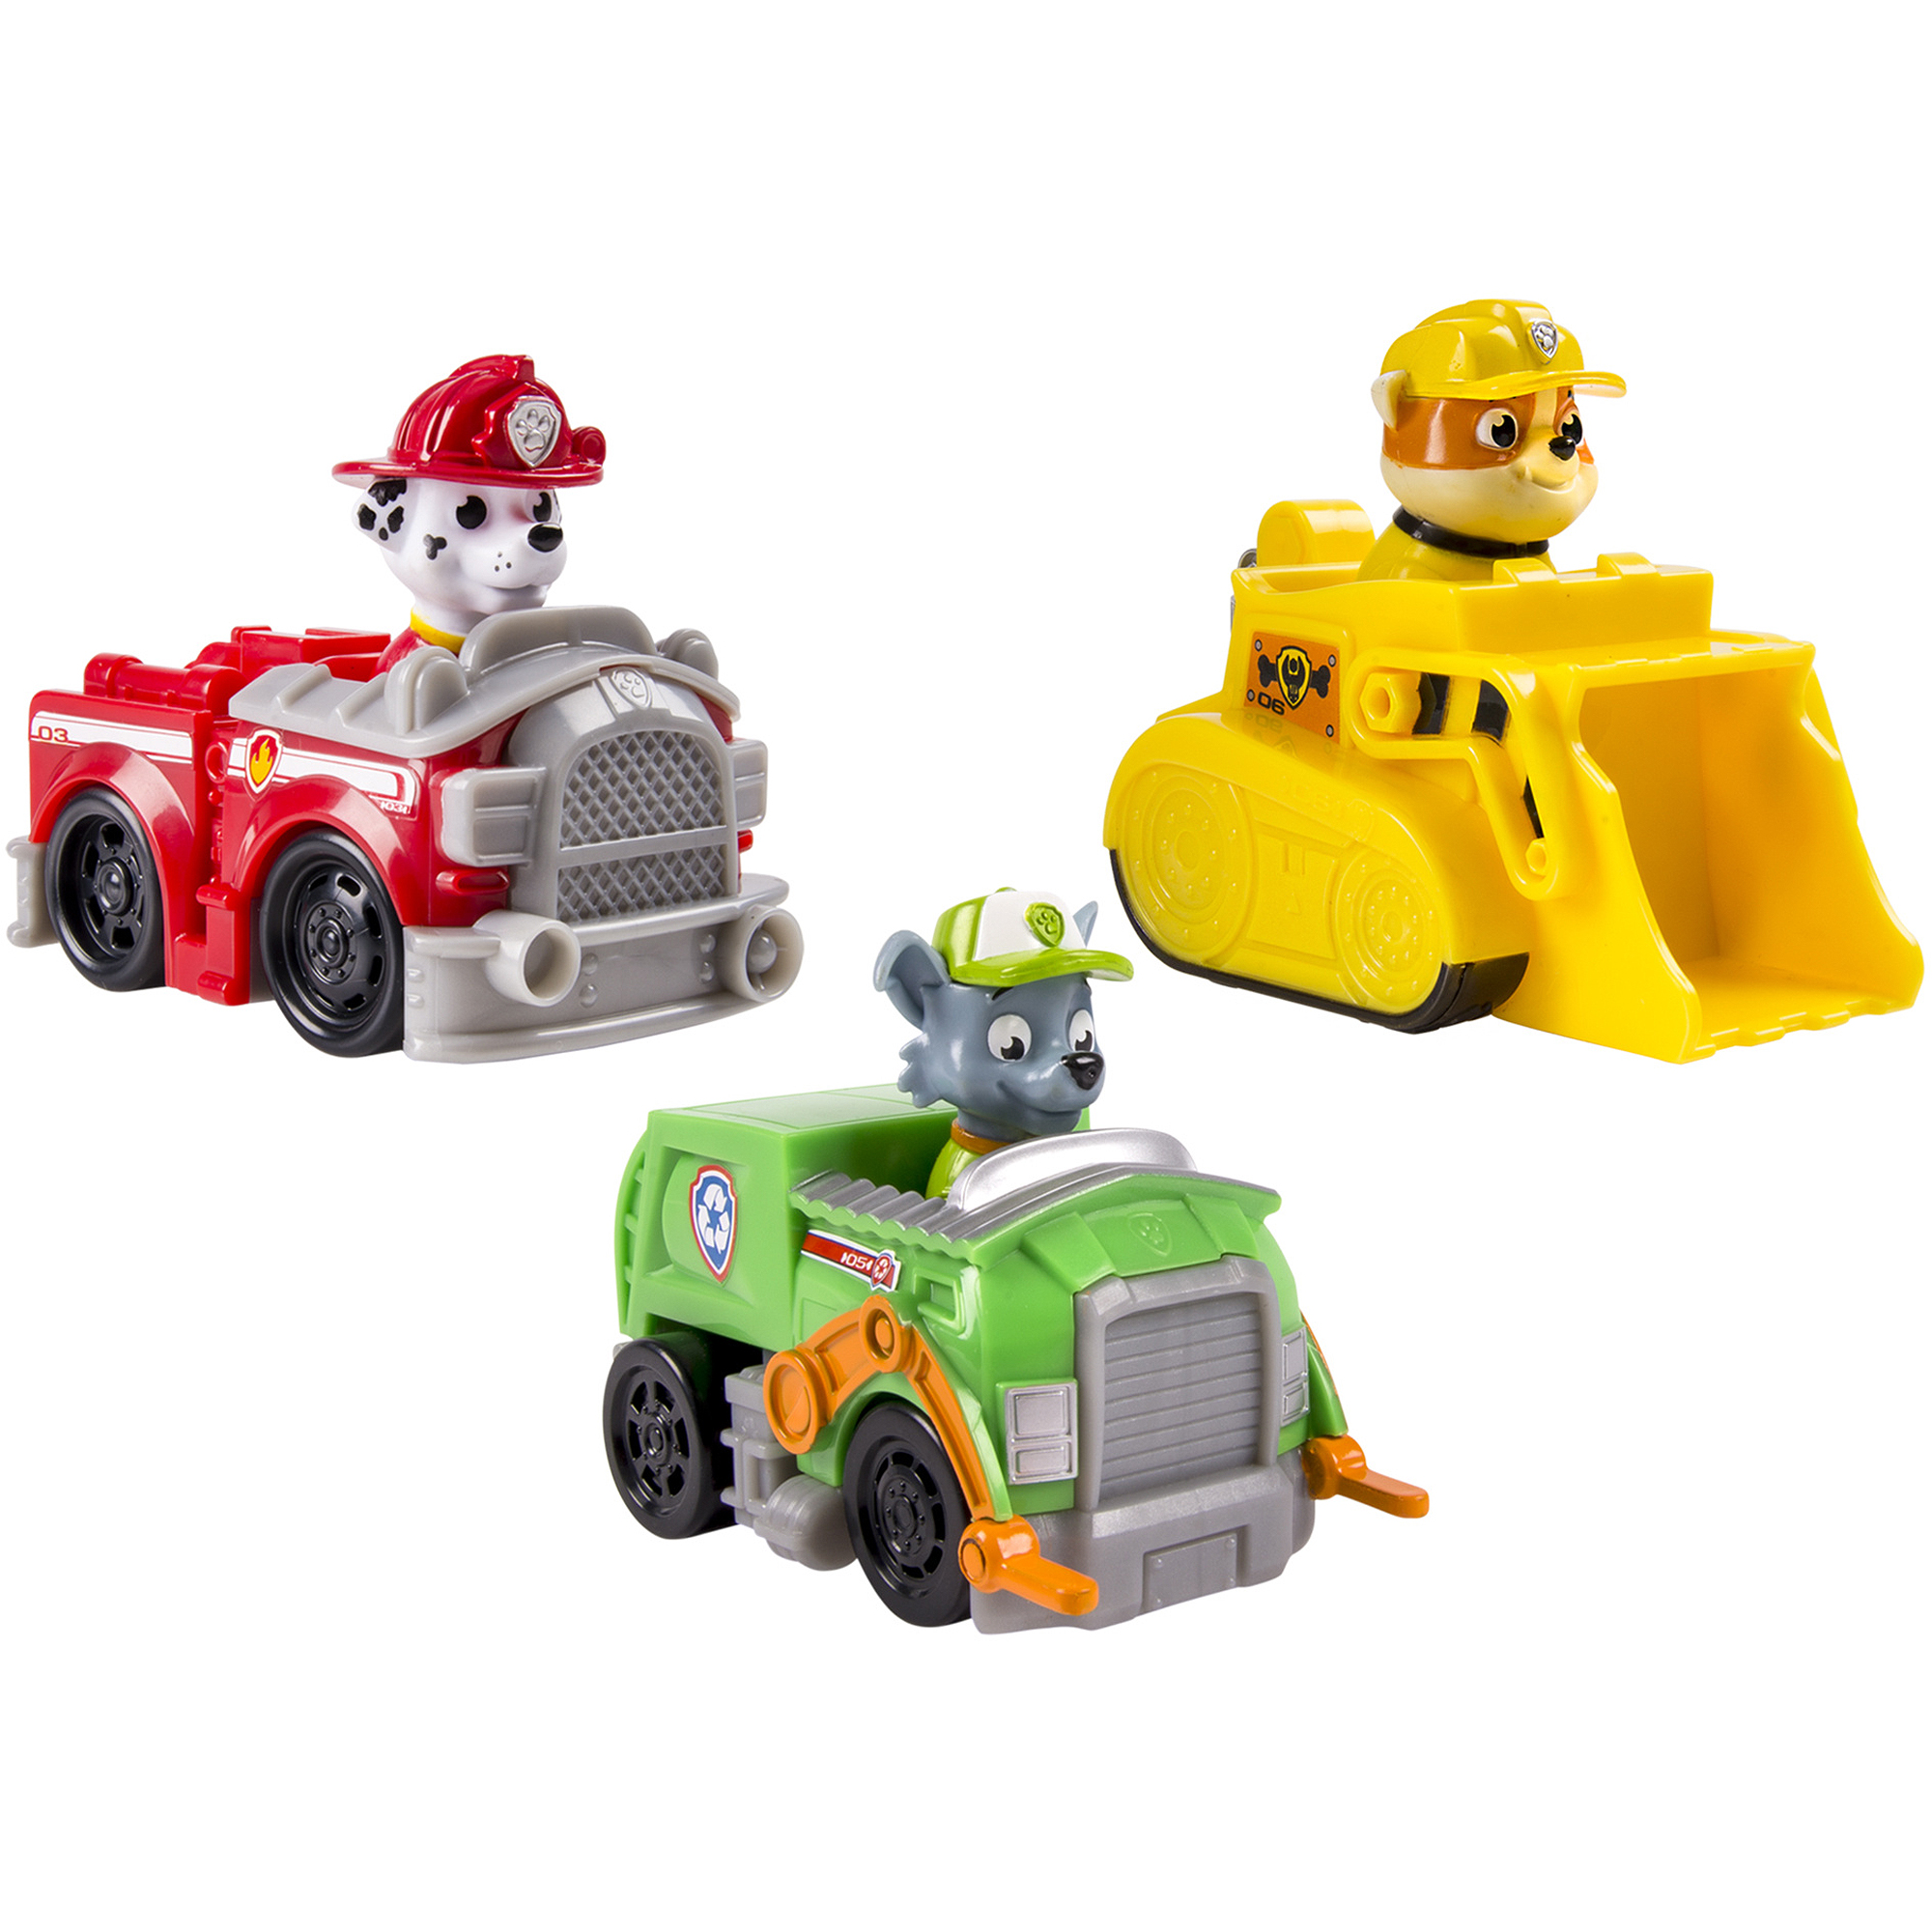 Nickelodeon Paw Patrol - Rescue Racers 3pk Vehicle Set Marshal Rubble, Rocky